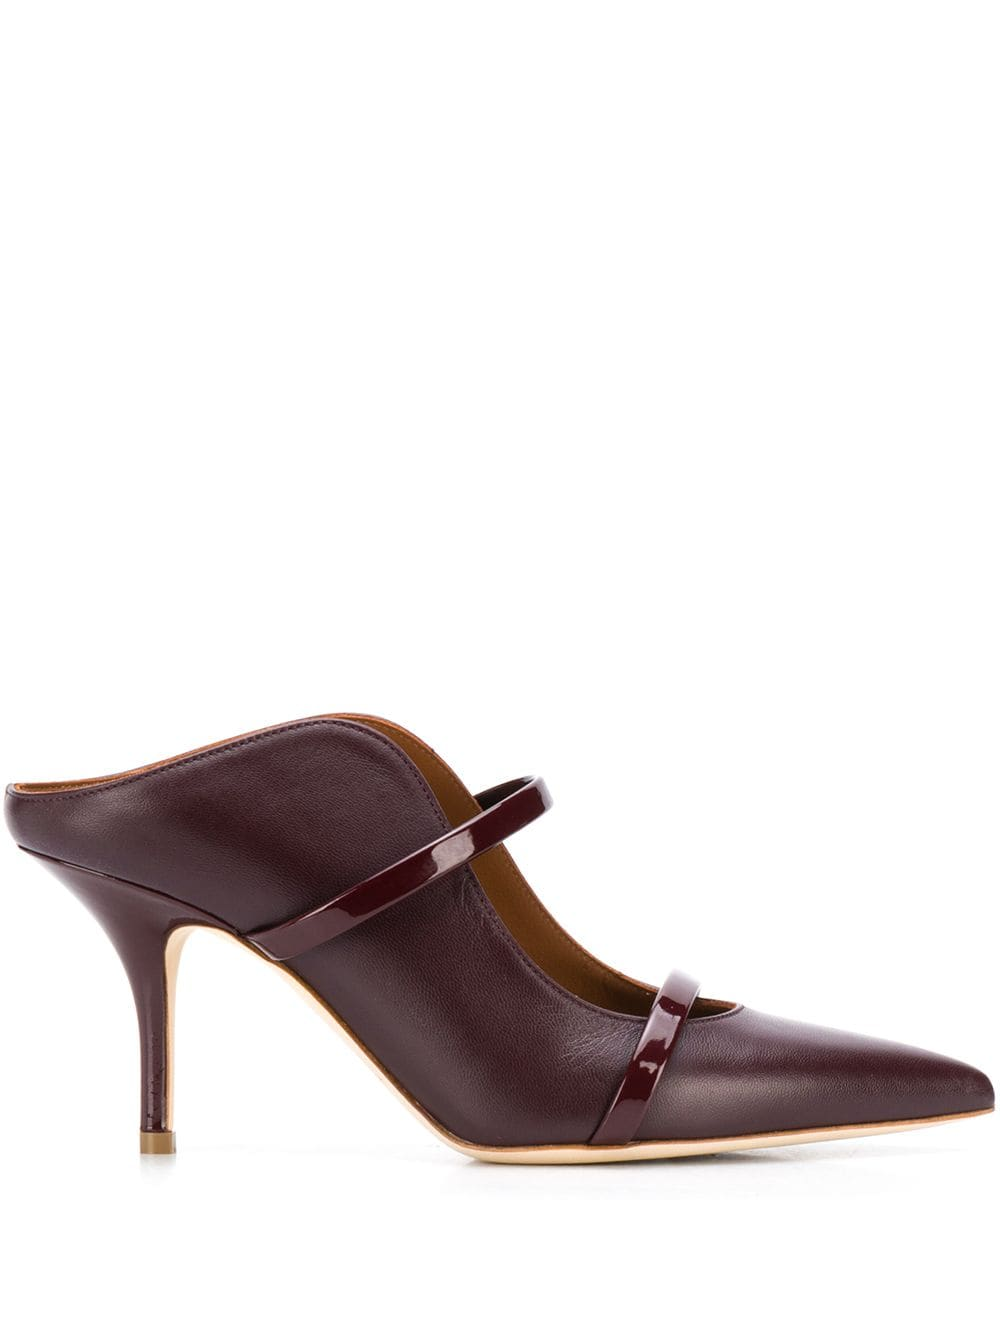 Malone Souliers Pumps mit spitzer Kappe - Rot